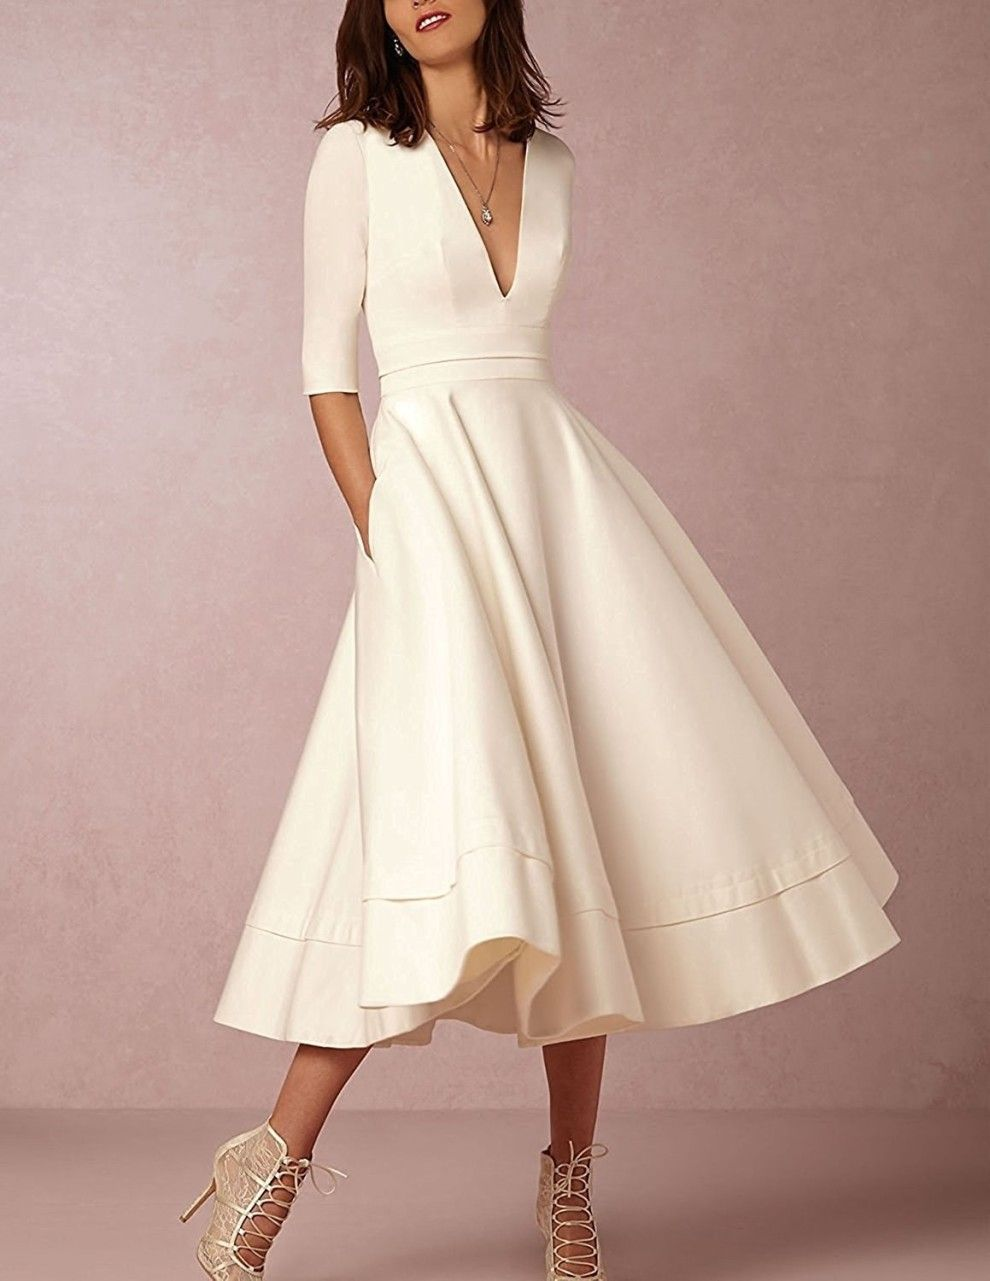 34 Stylish Dresses To Get You Through Spring And Into Summer Evening Dresses With Sleeves Fashion Day Dresses [ 1281 x 990 Pixel ]